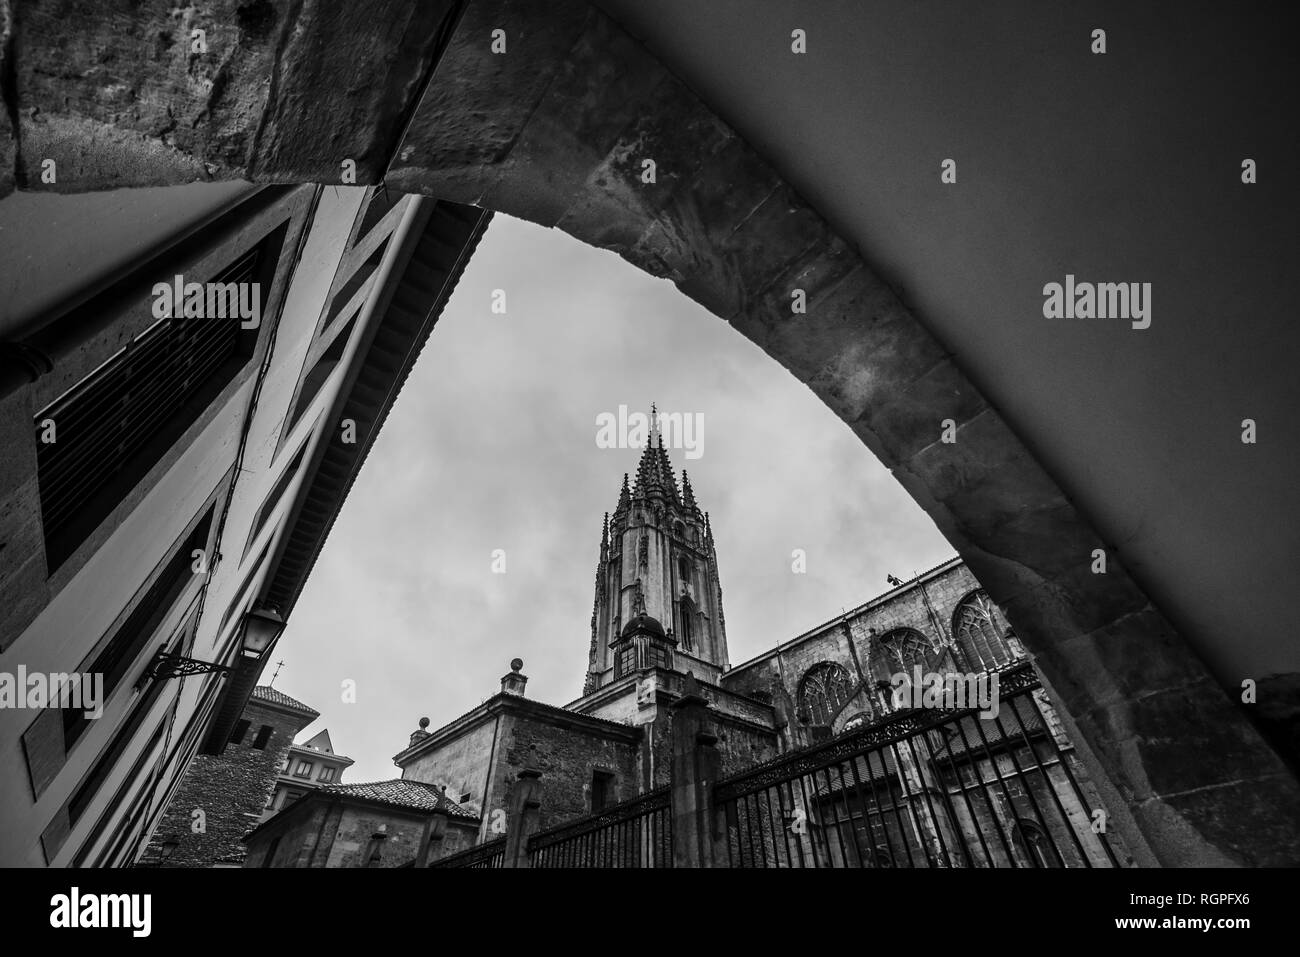 Black and white from below wonderful high tower of construction near stone buildings - Stock Image